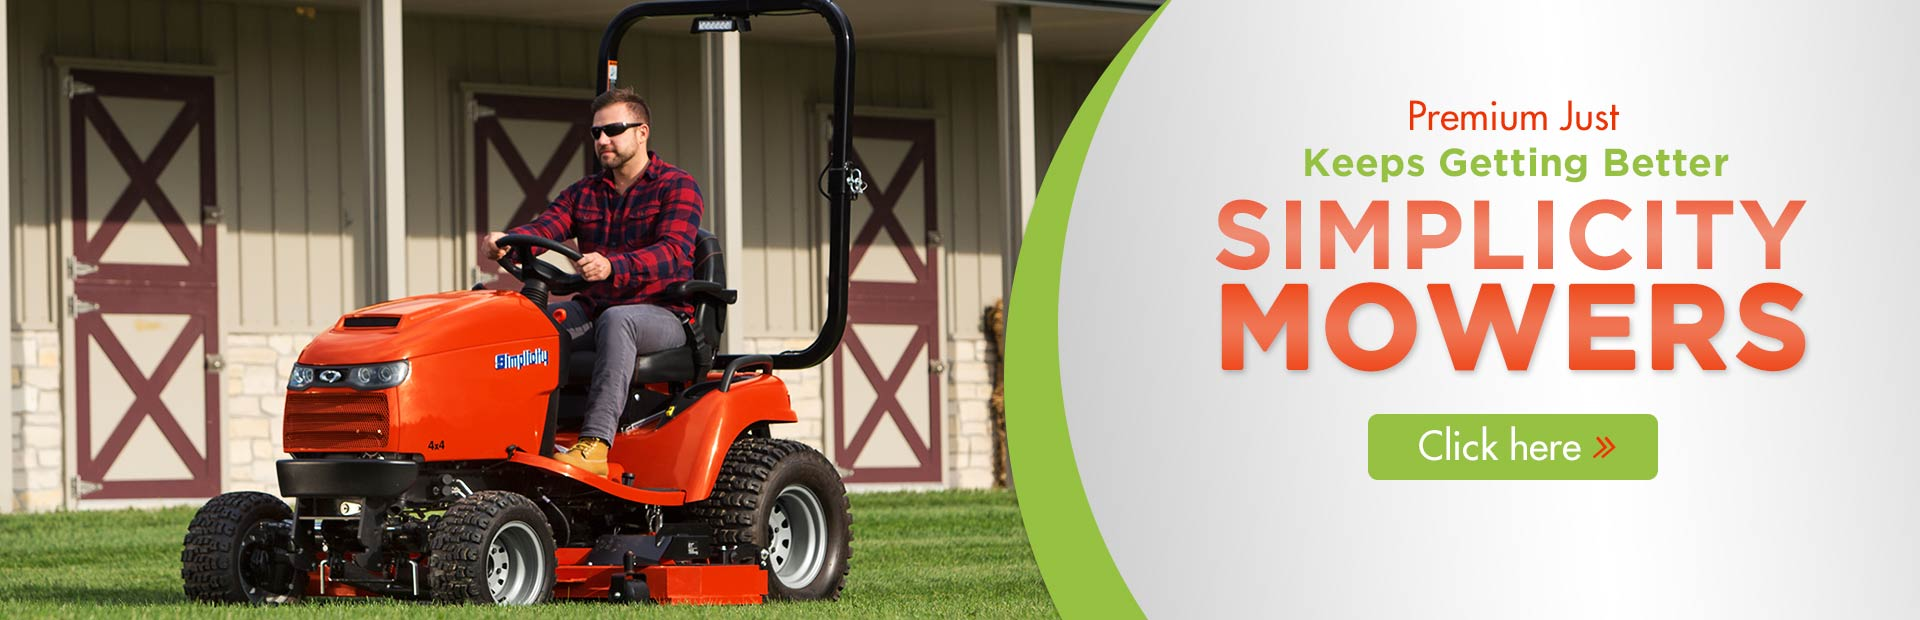 Click here to view our selection of Simplicity mowers!